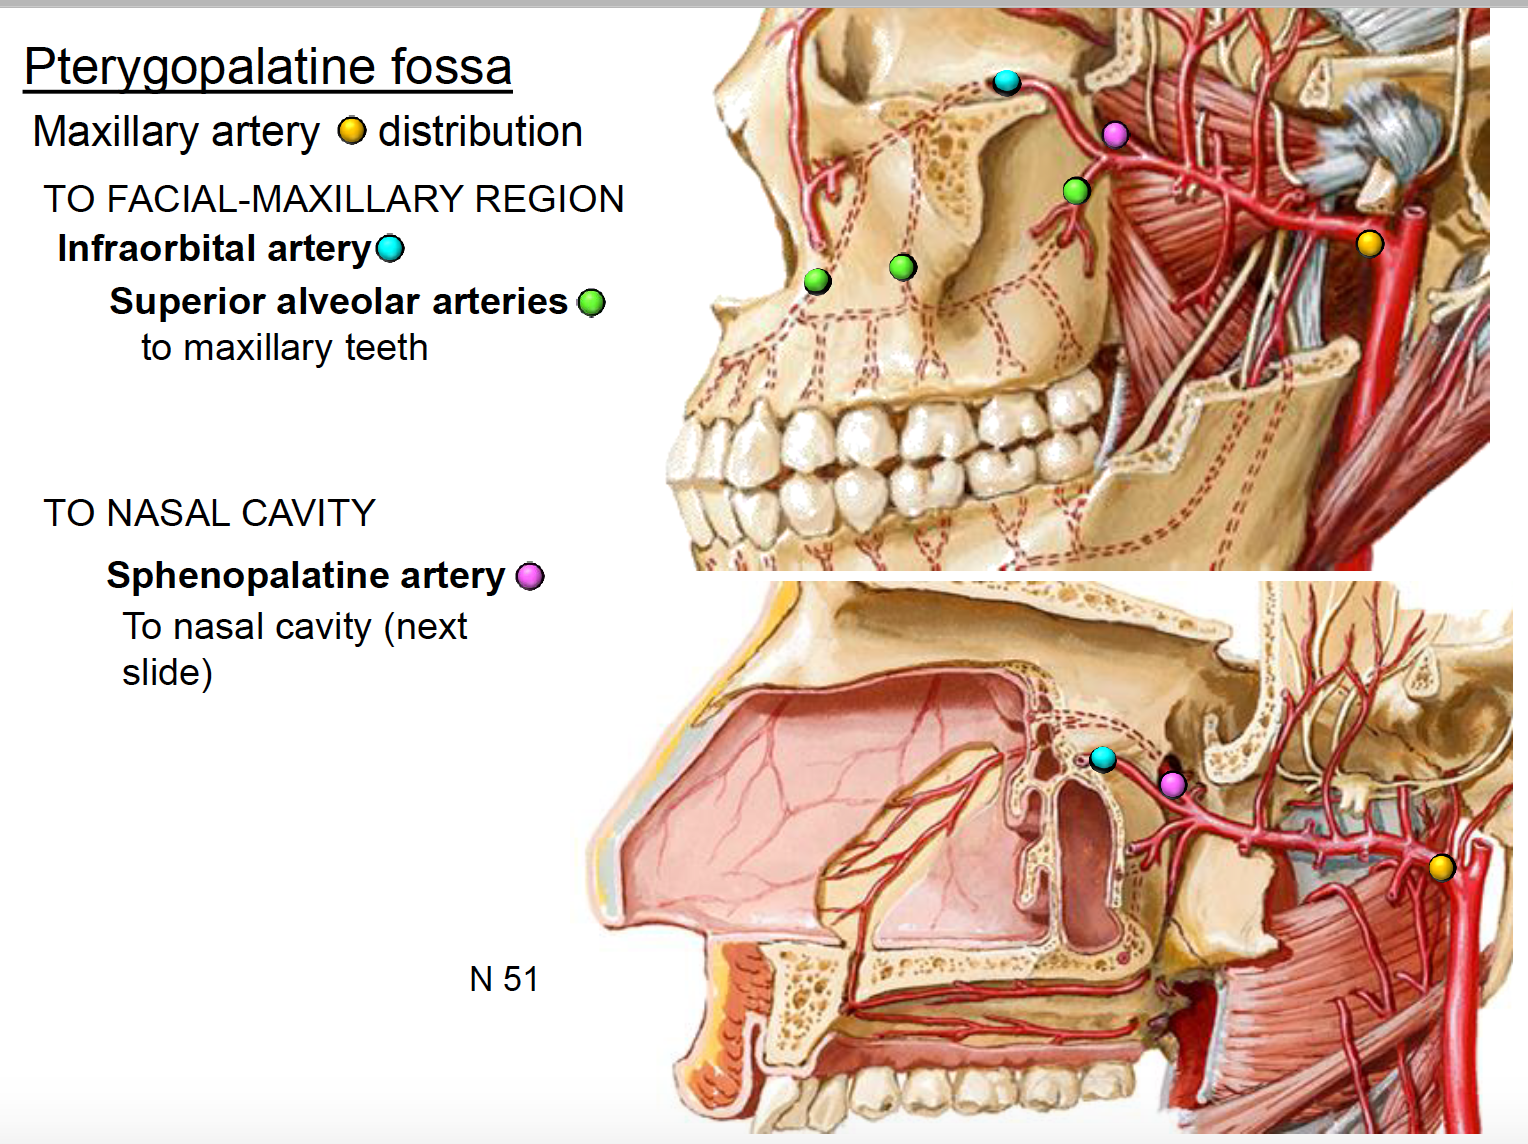 Anatomy G63 Pterygopalatine fossa (Anatomy Unit 8) Flashcards | Memorang